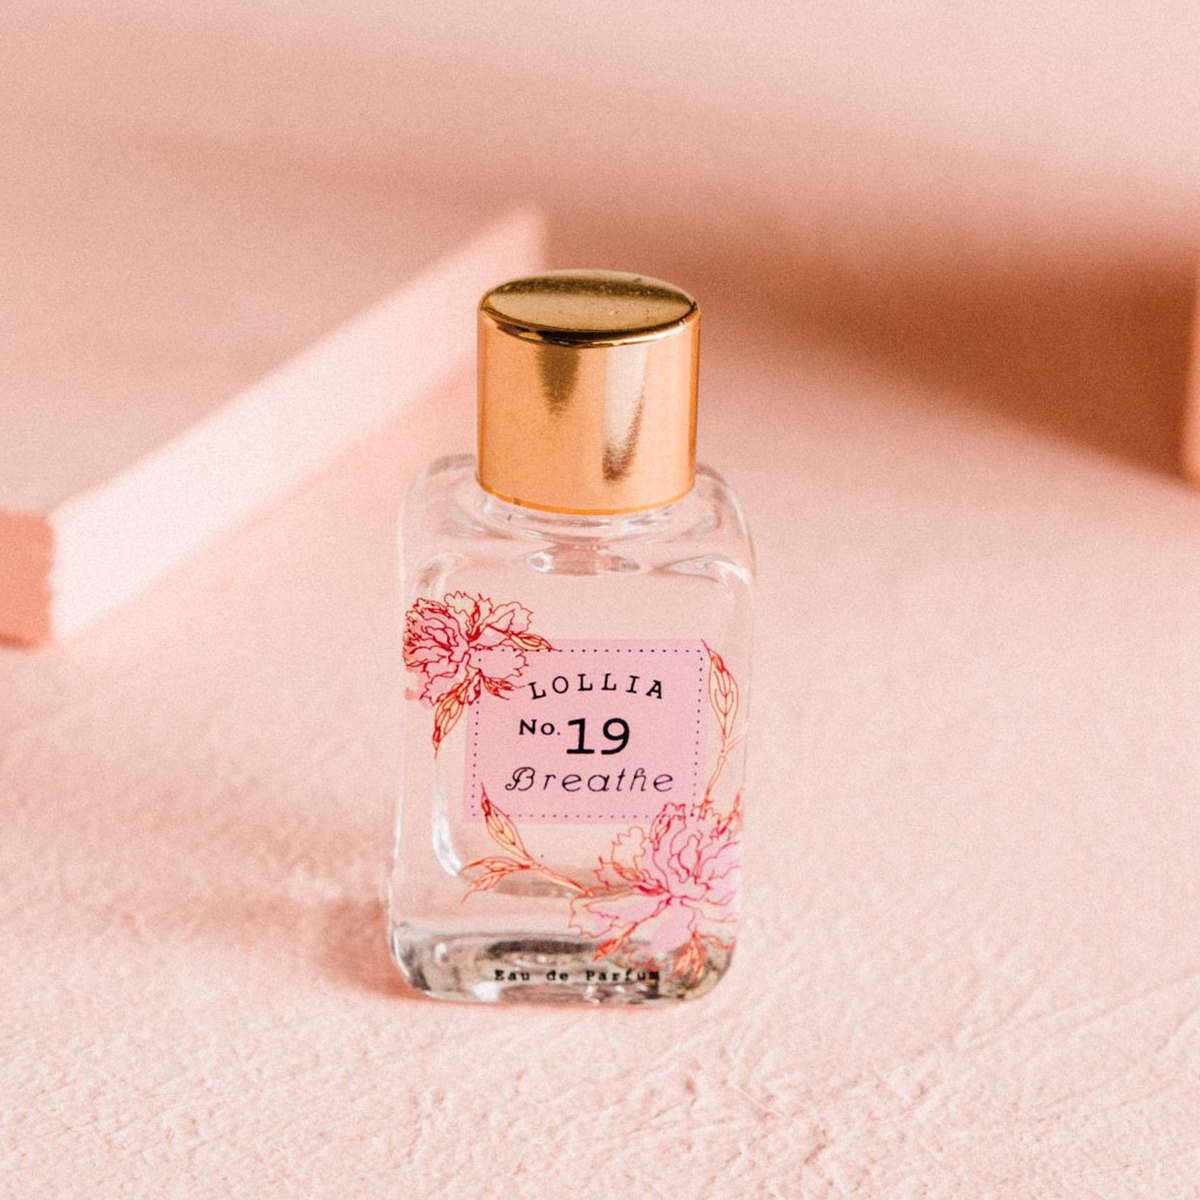 Lollia Lollia Breathe Little Luxe Parfum